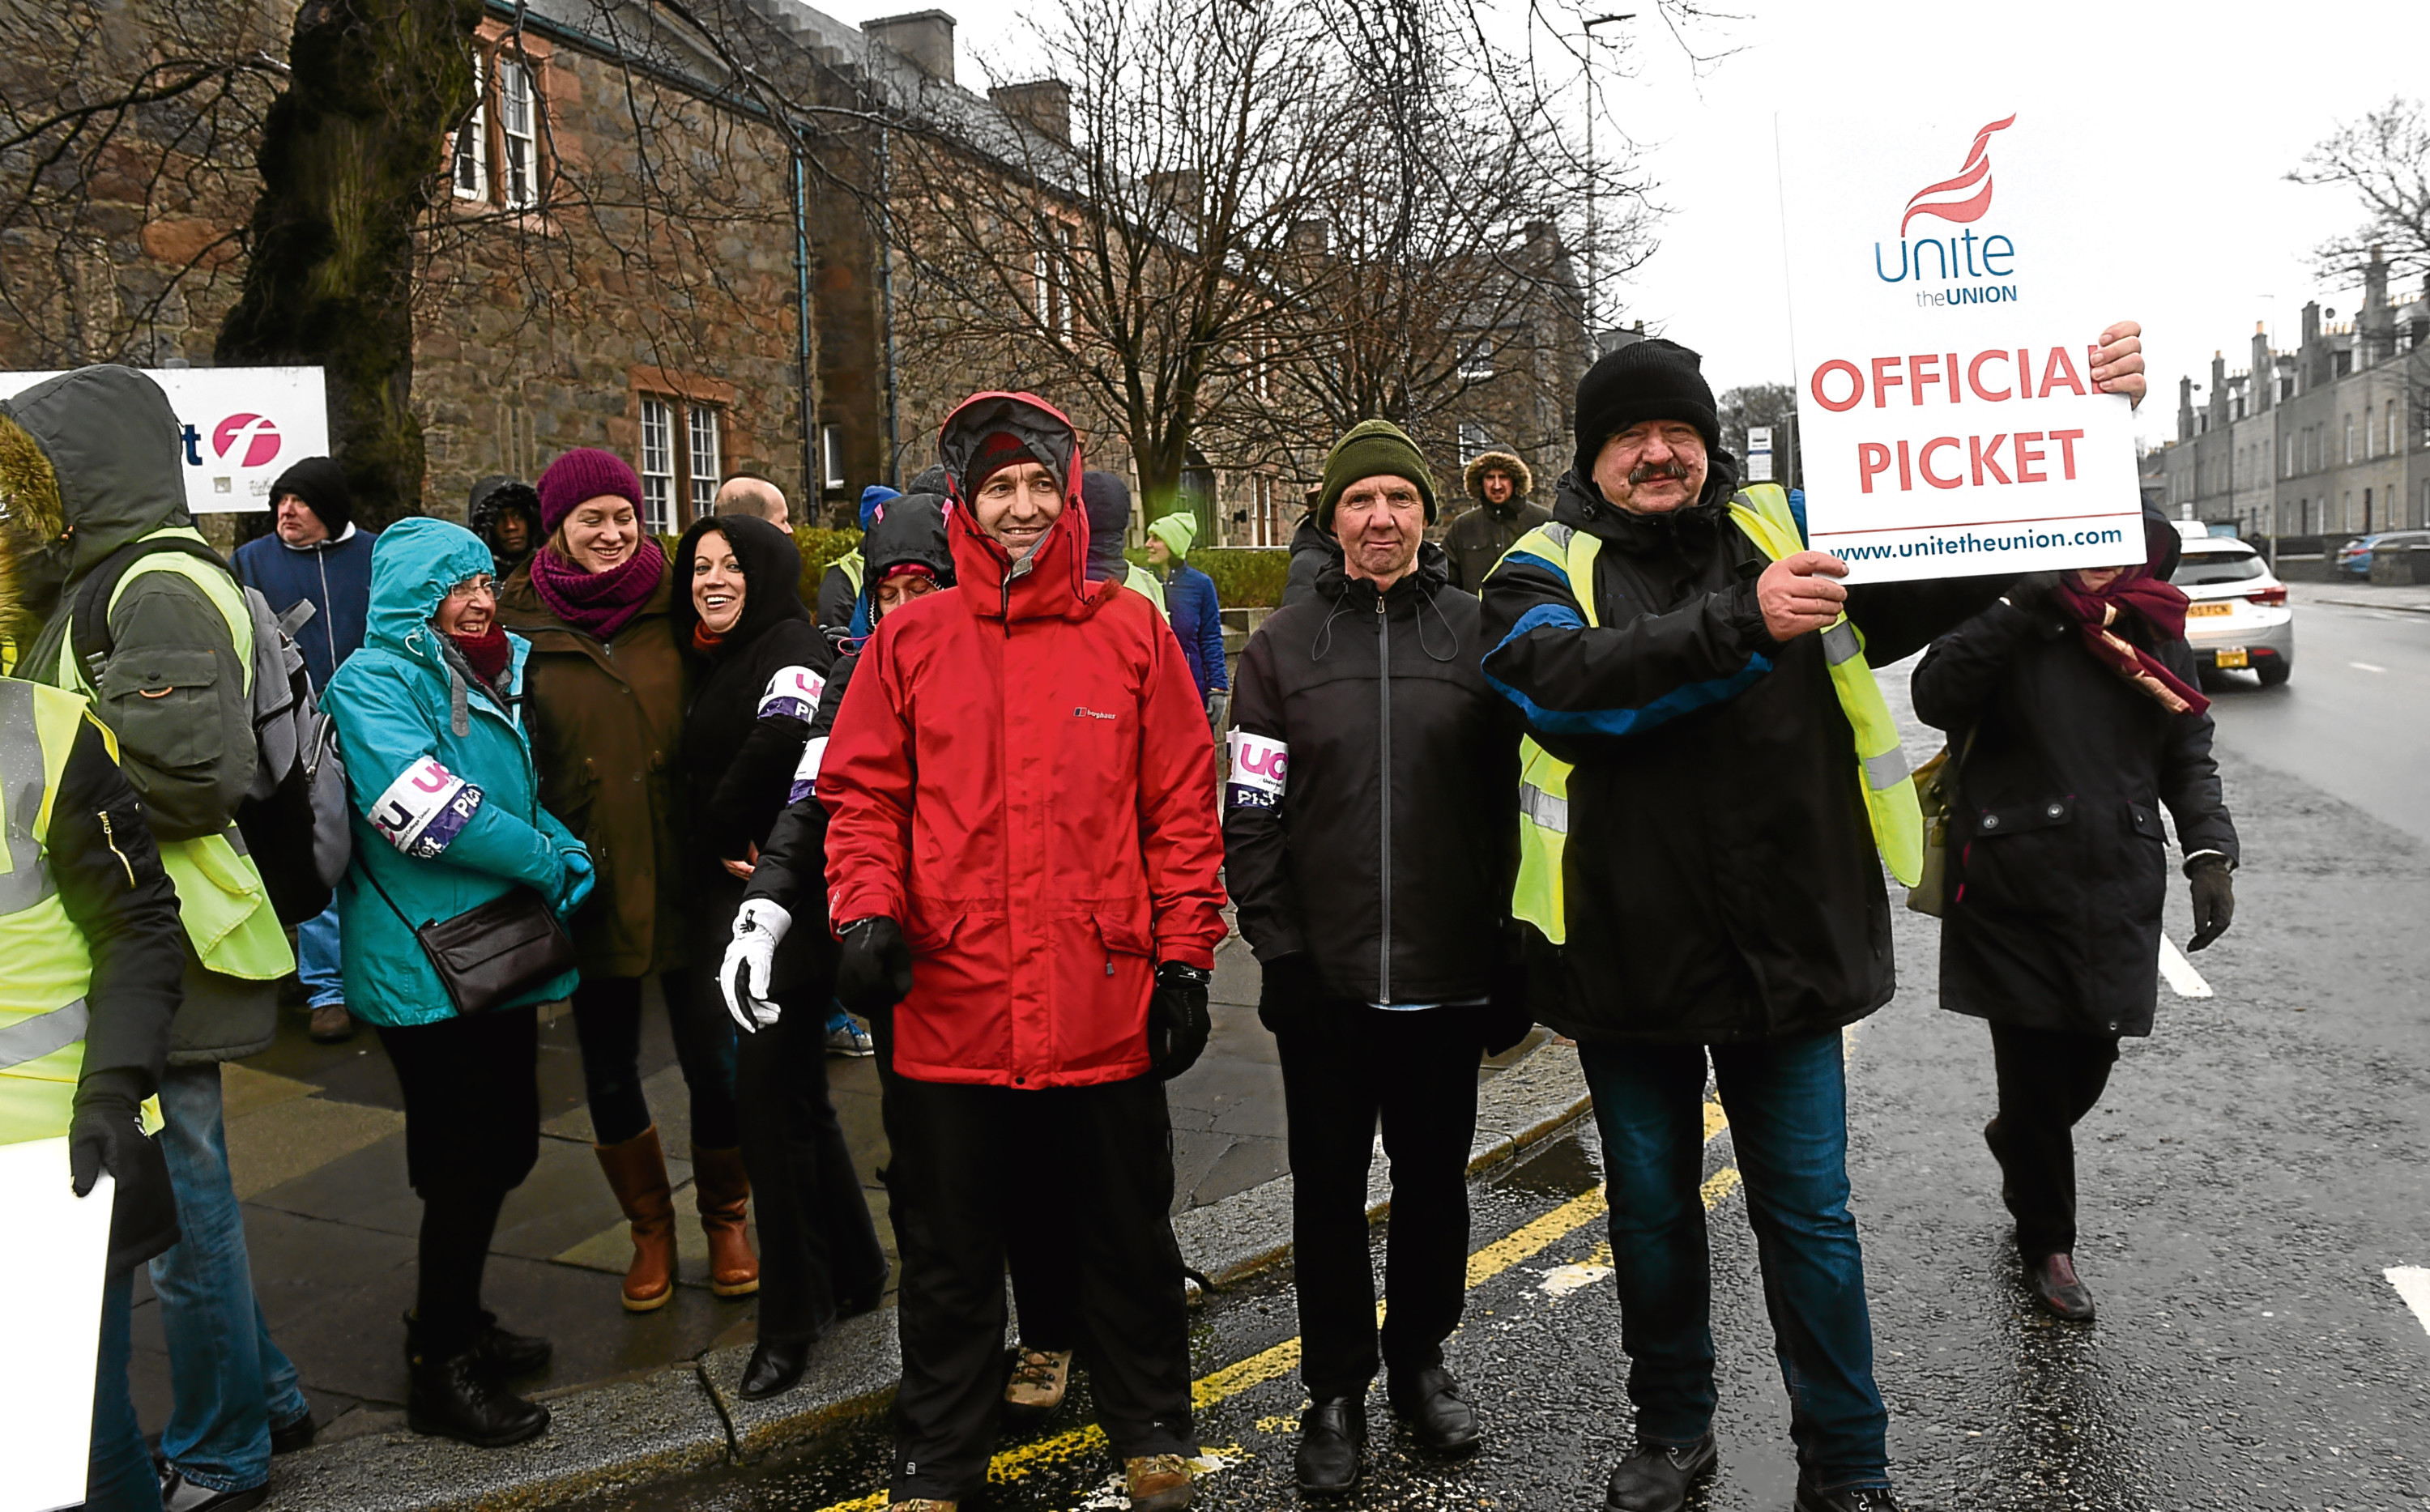 First Bus and University of Aberdeen lecturers striking together at the First Bus depot.